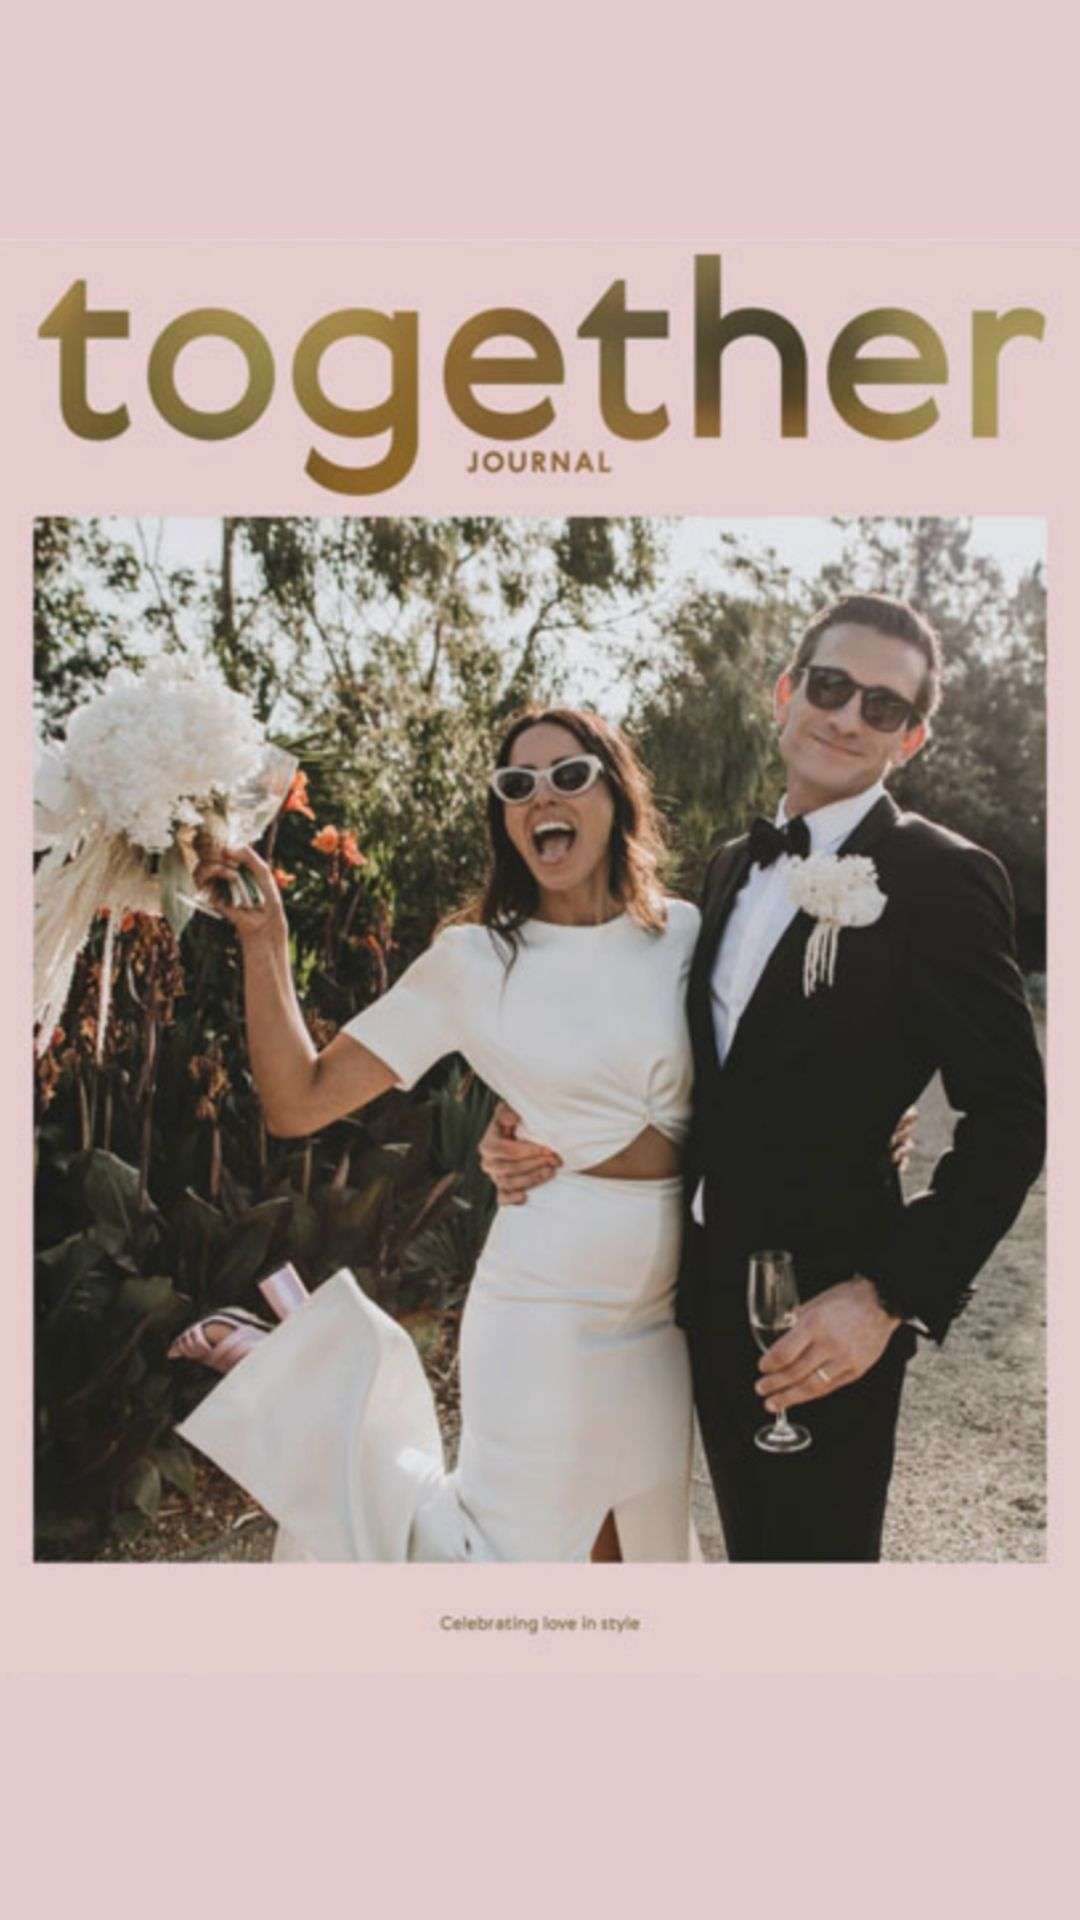 together journal pink bride groom white bouquet core cider